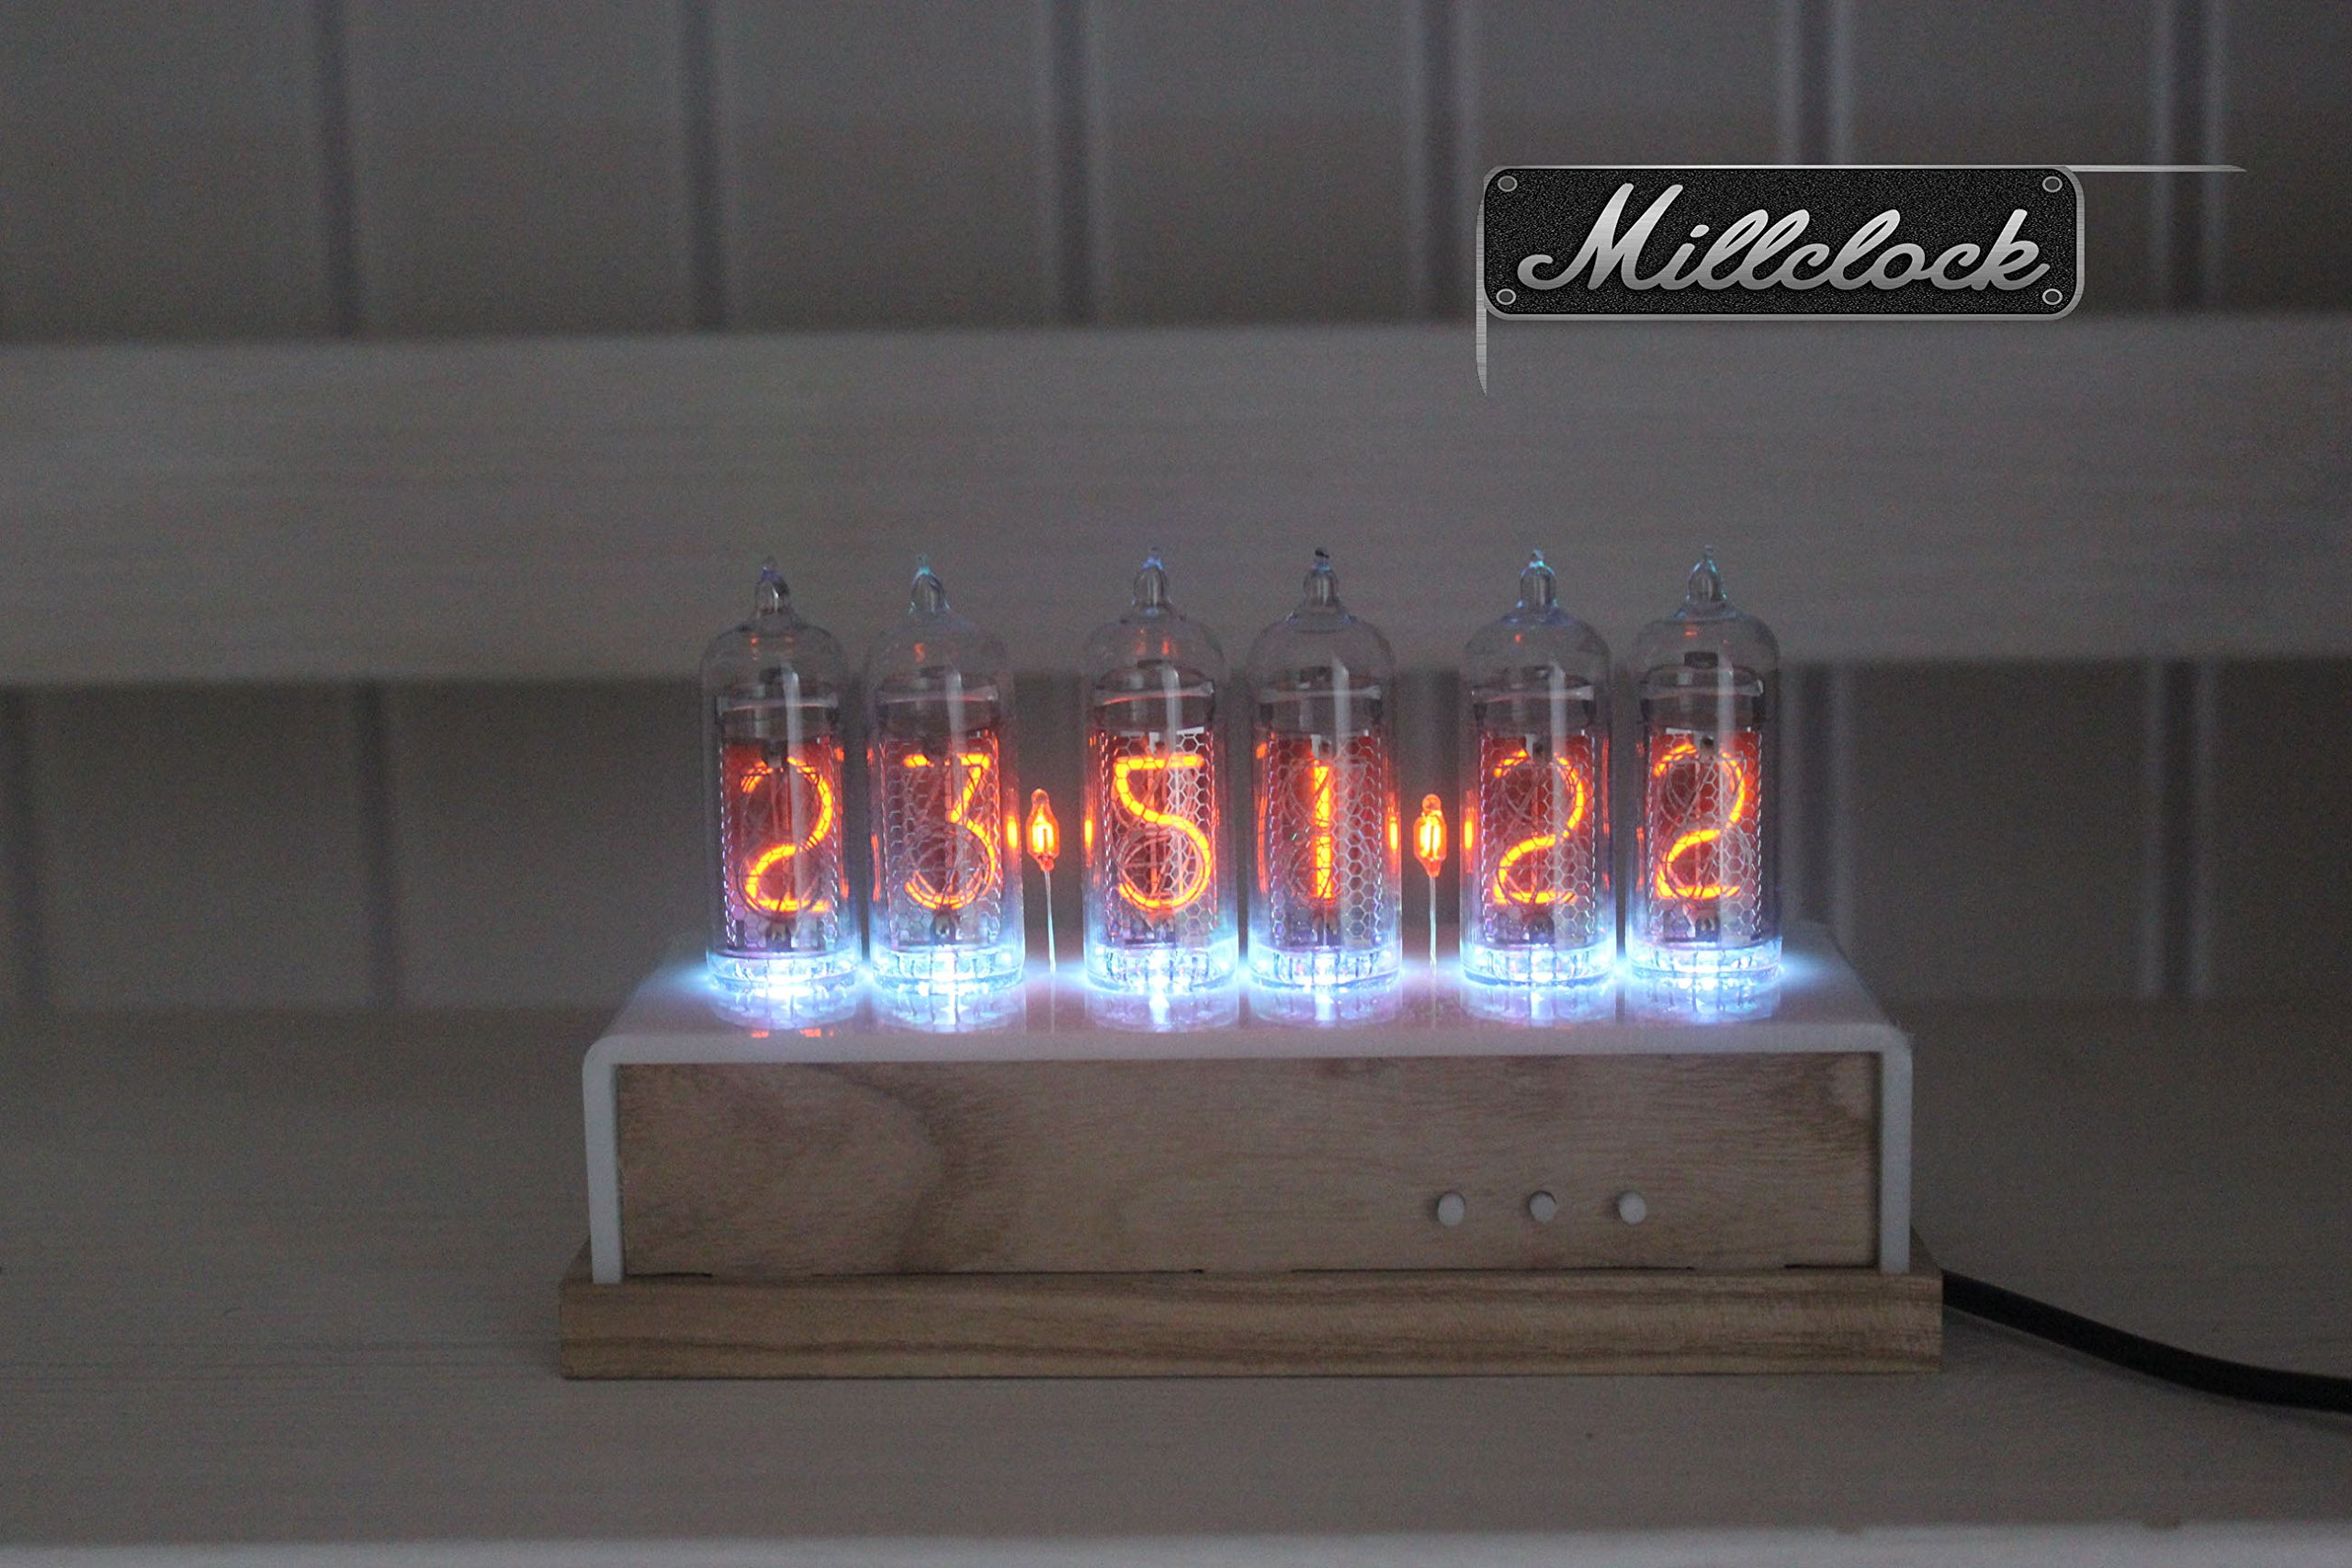 IN-14 NIXIE TUBE CLOCK ASSEMBLED WOOD ENCLOSURE GPS ALARM AND ADAPTER 6-tubes by MILLCLOCK by Millclock